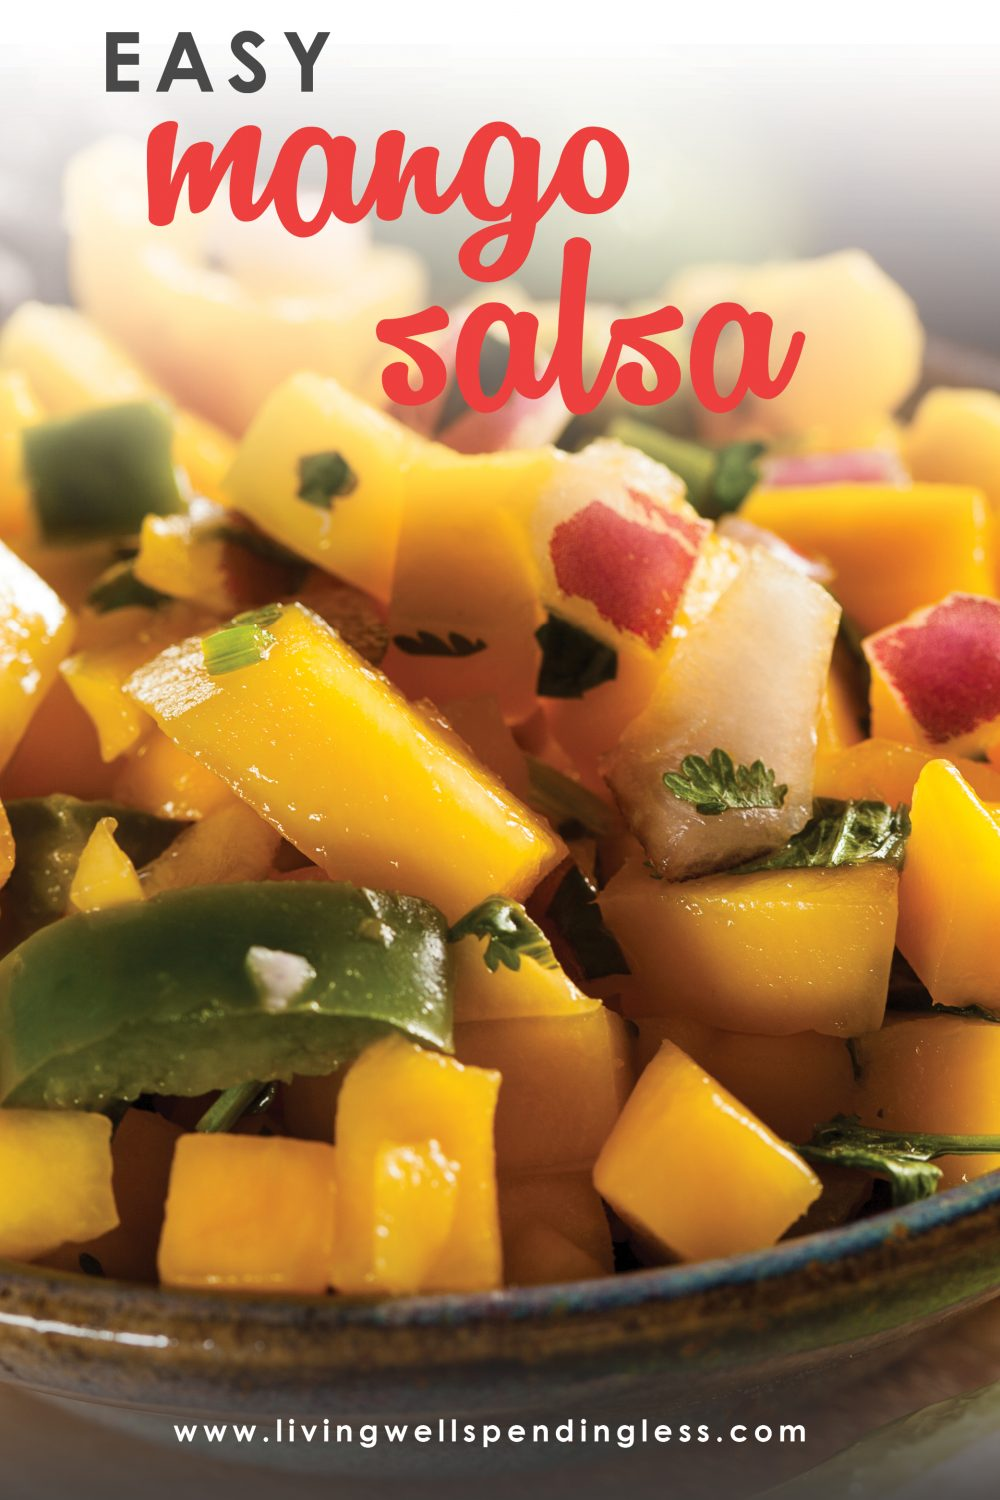 Looking to liven up dinner? This Easy Mango Salsa only has four ingredients, is quick and adds a burst of flavor to main dishes. Or just serve with chips!